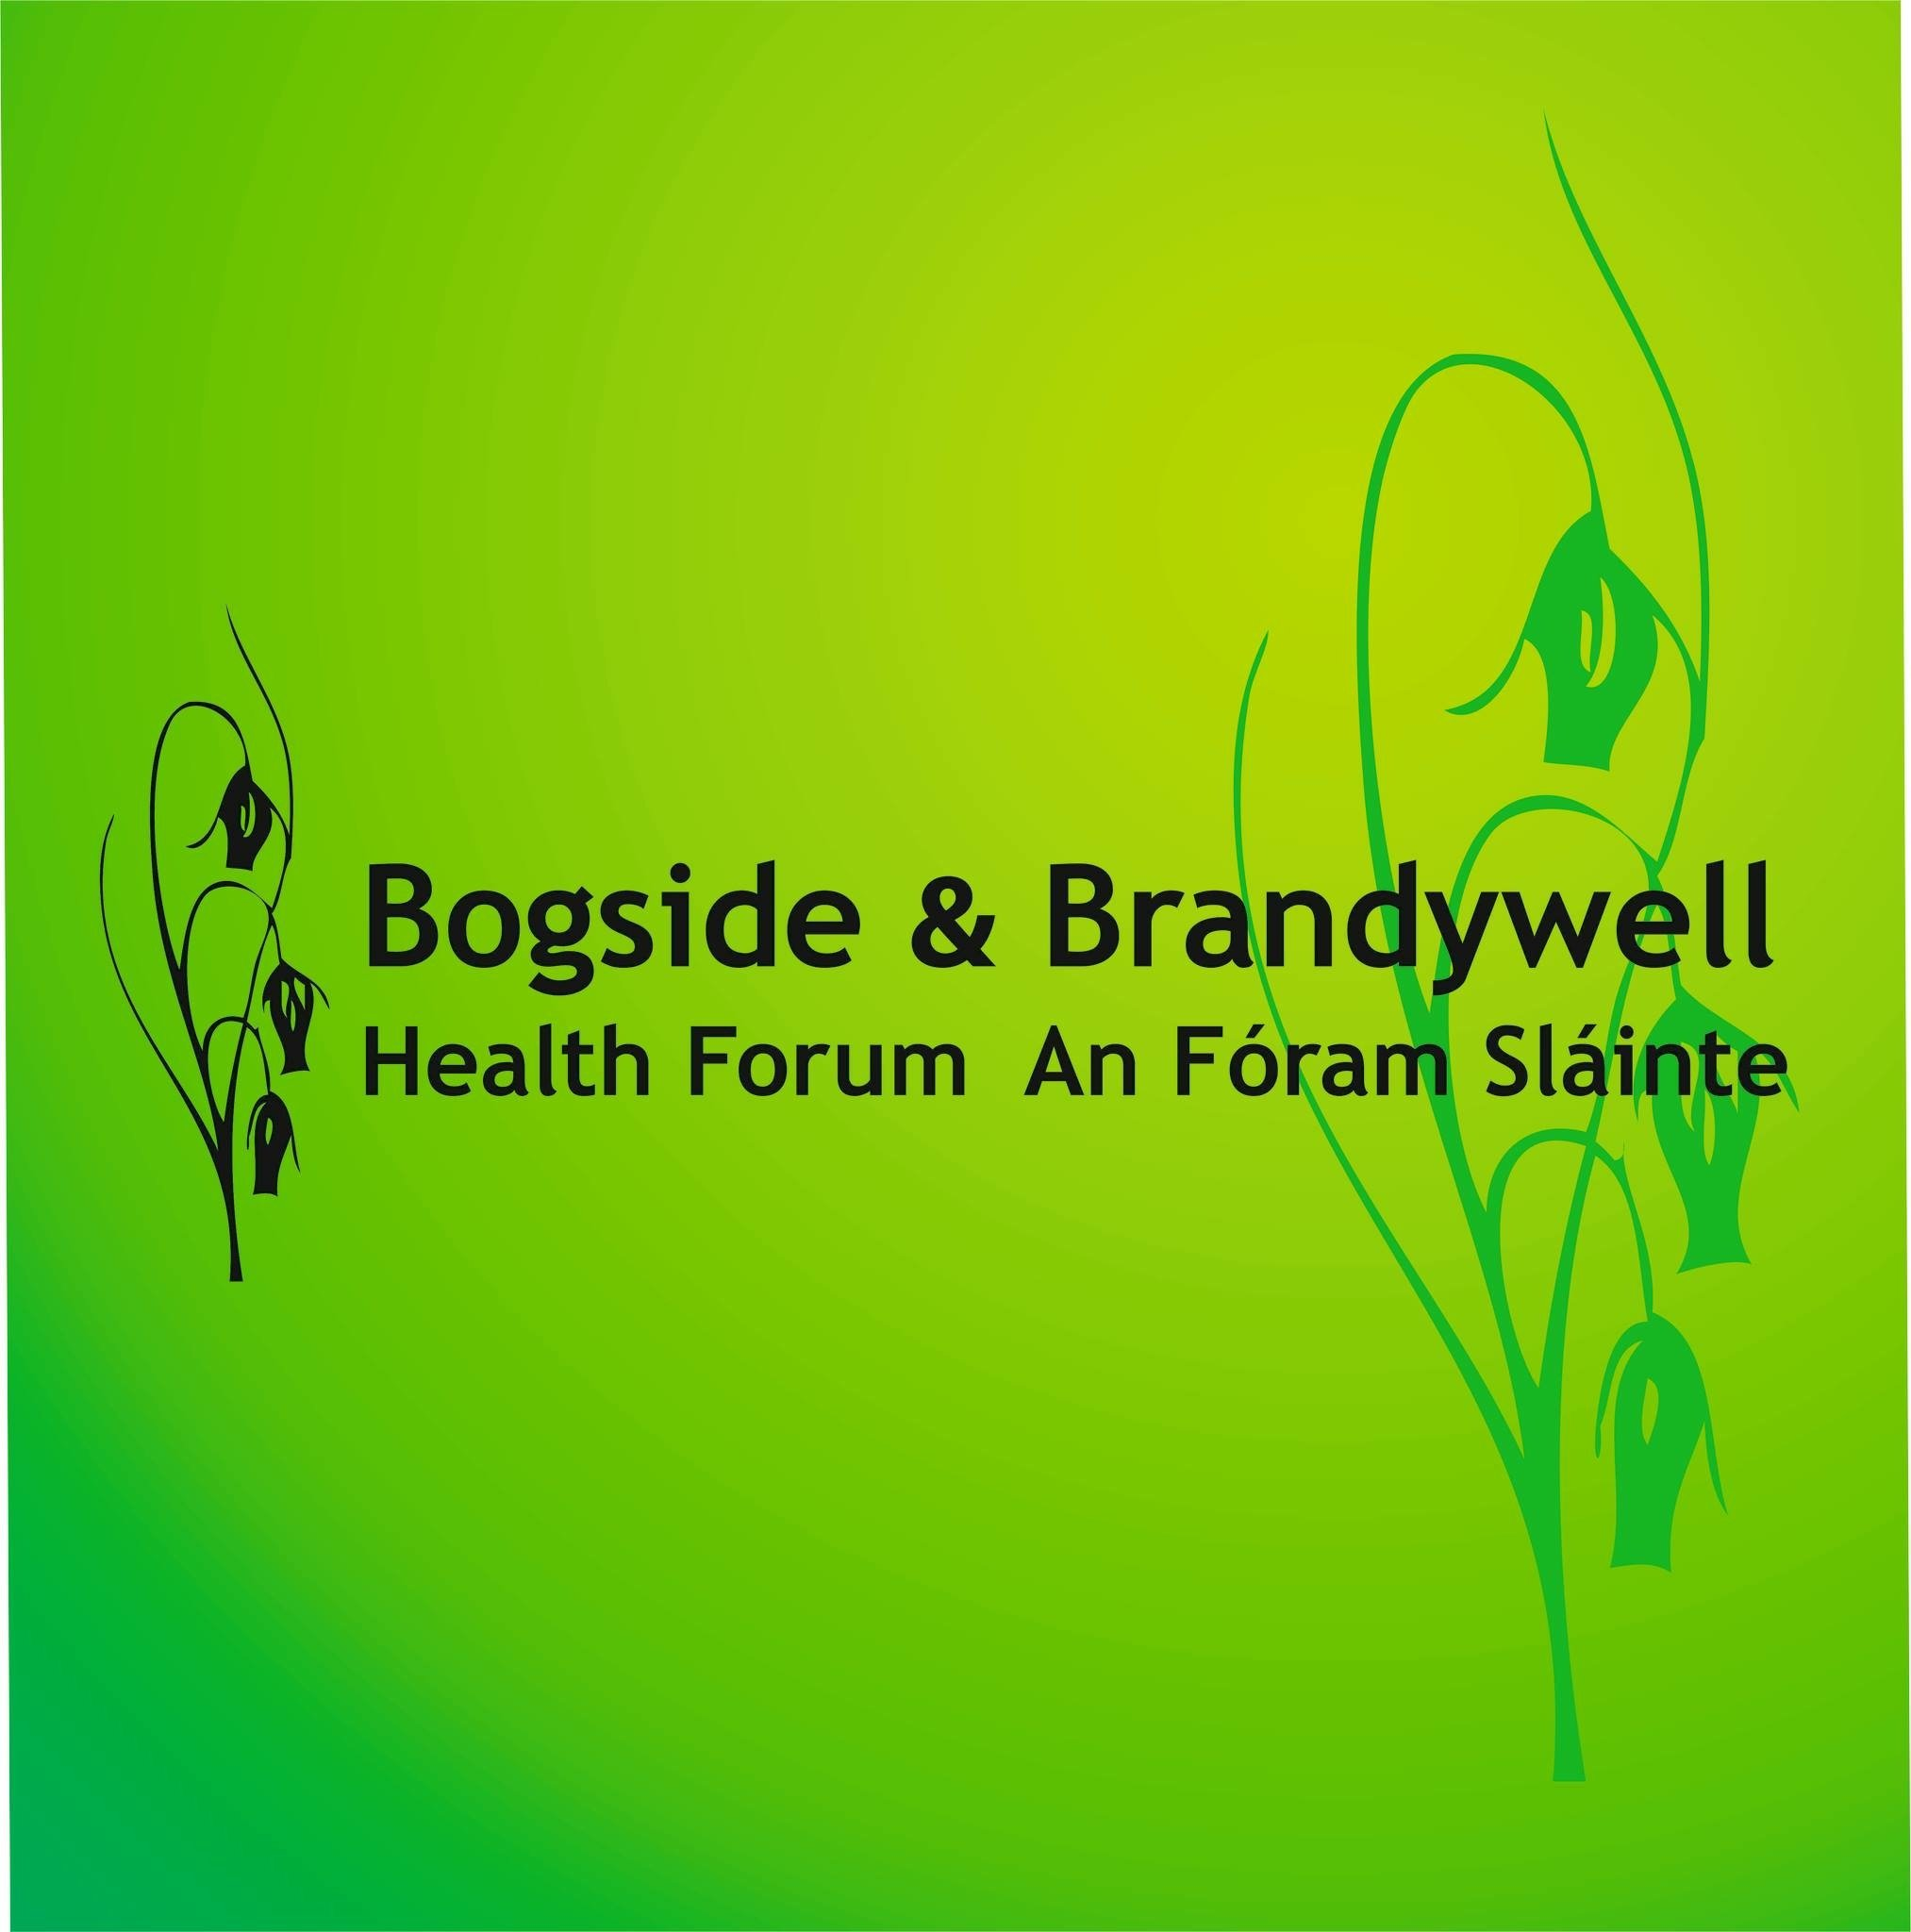 Bogside and Brandywell Health Forum